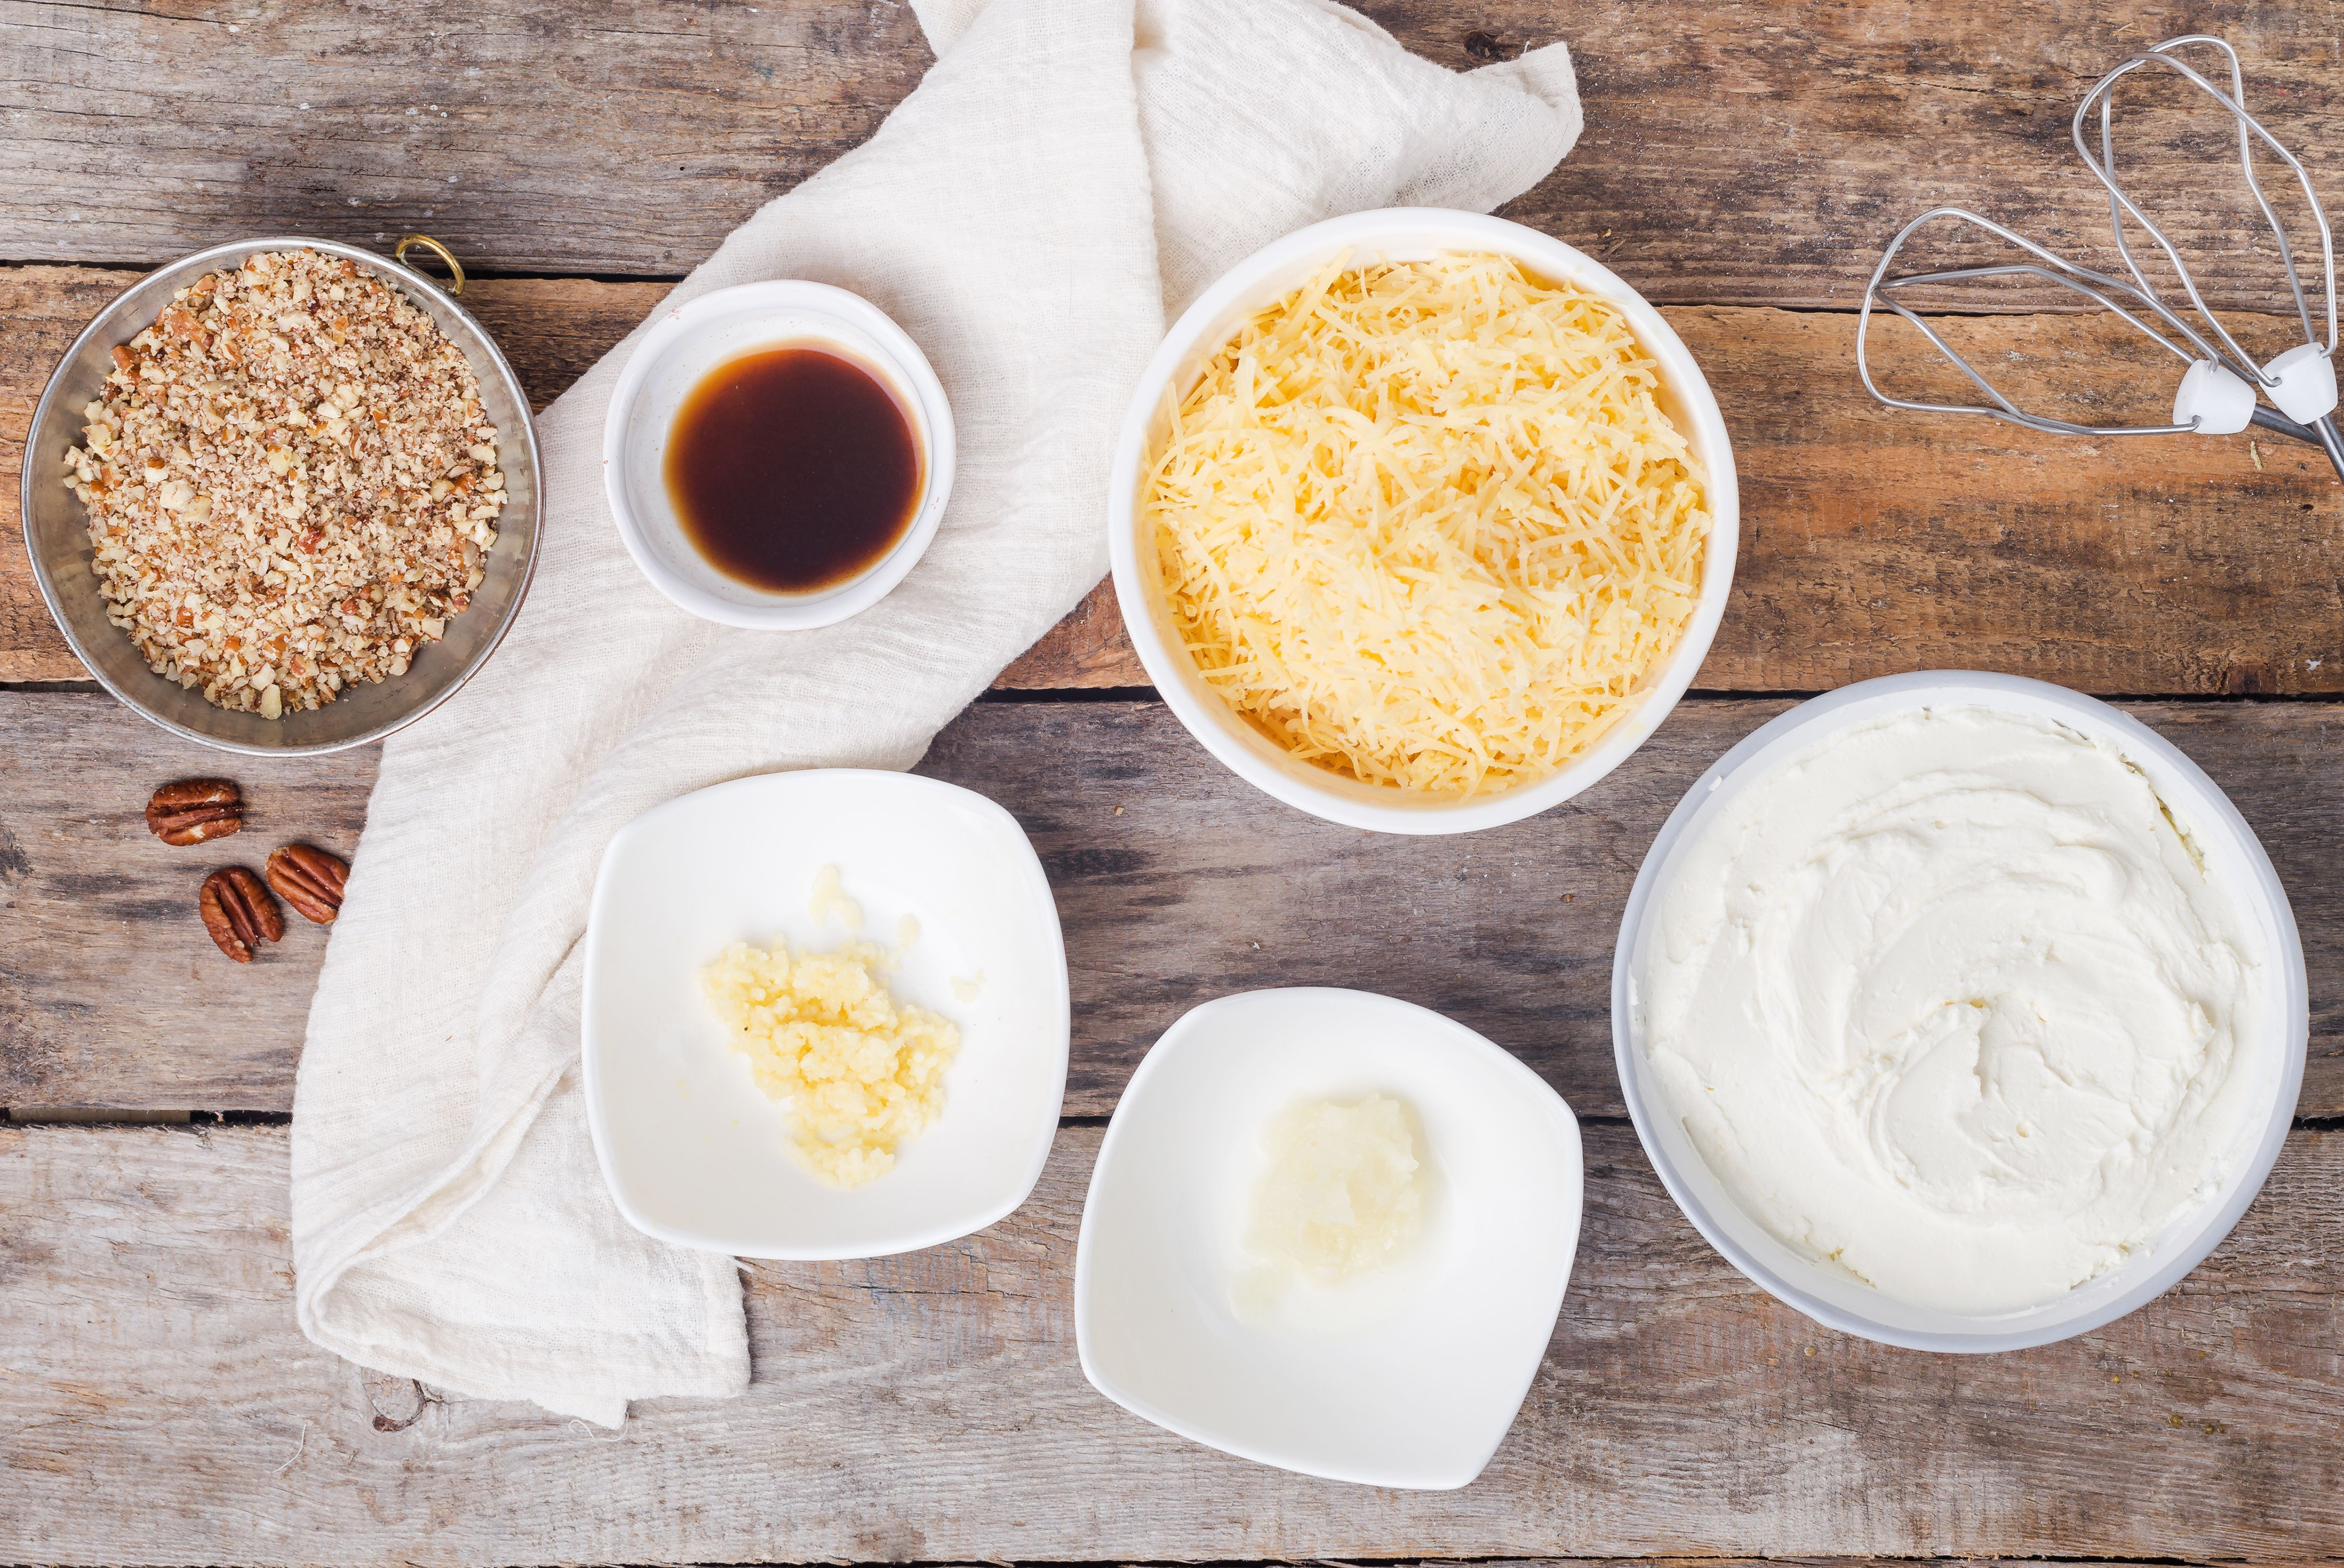 Ingredients for cheeseball with pecans